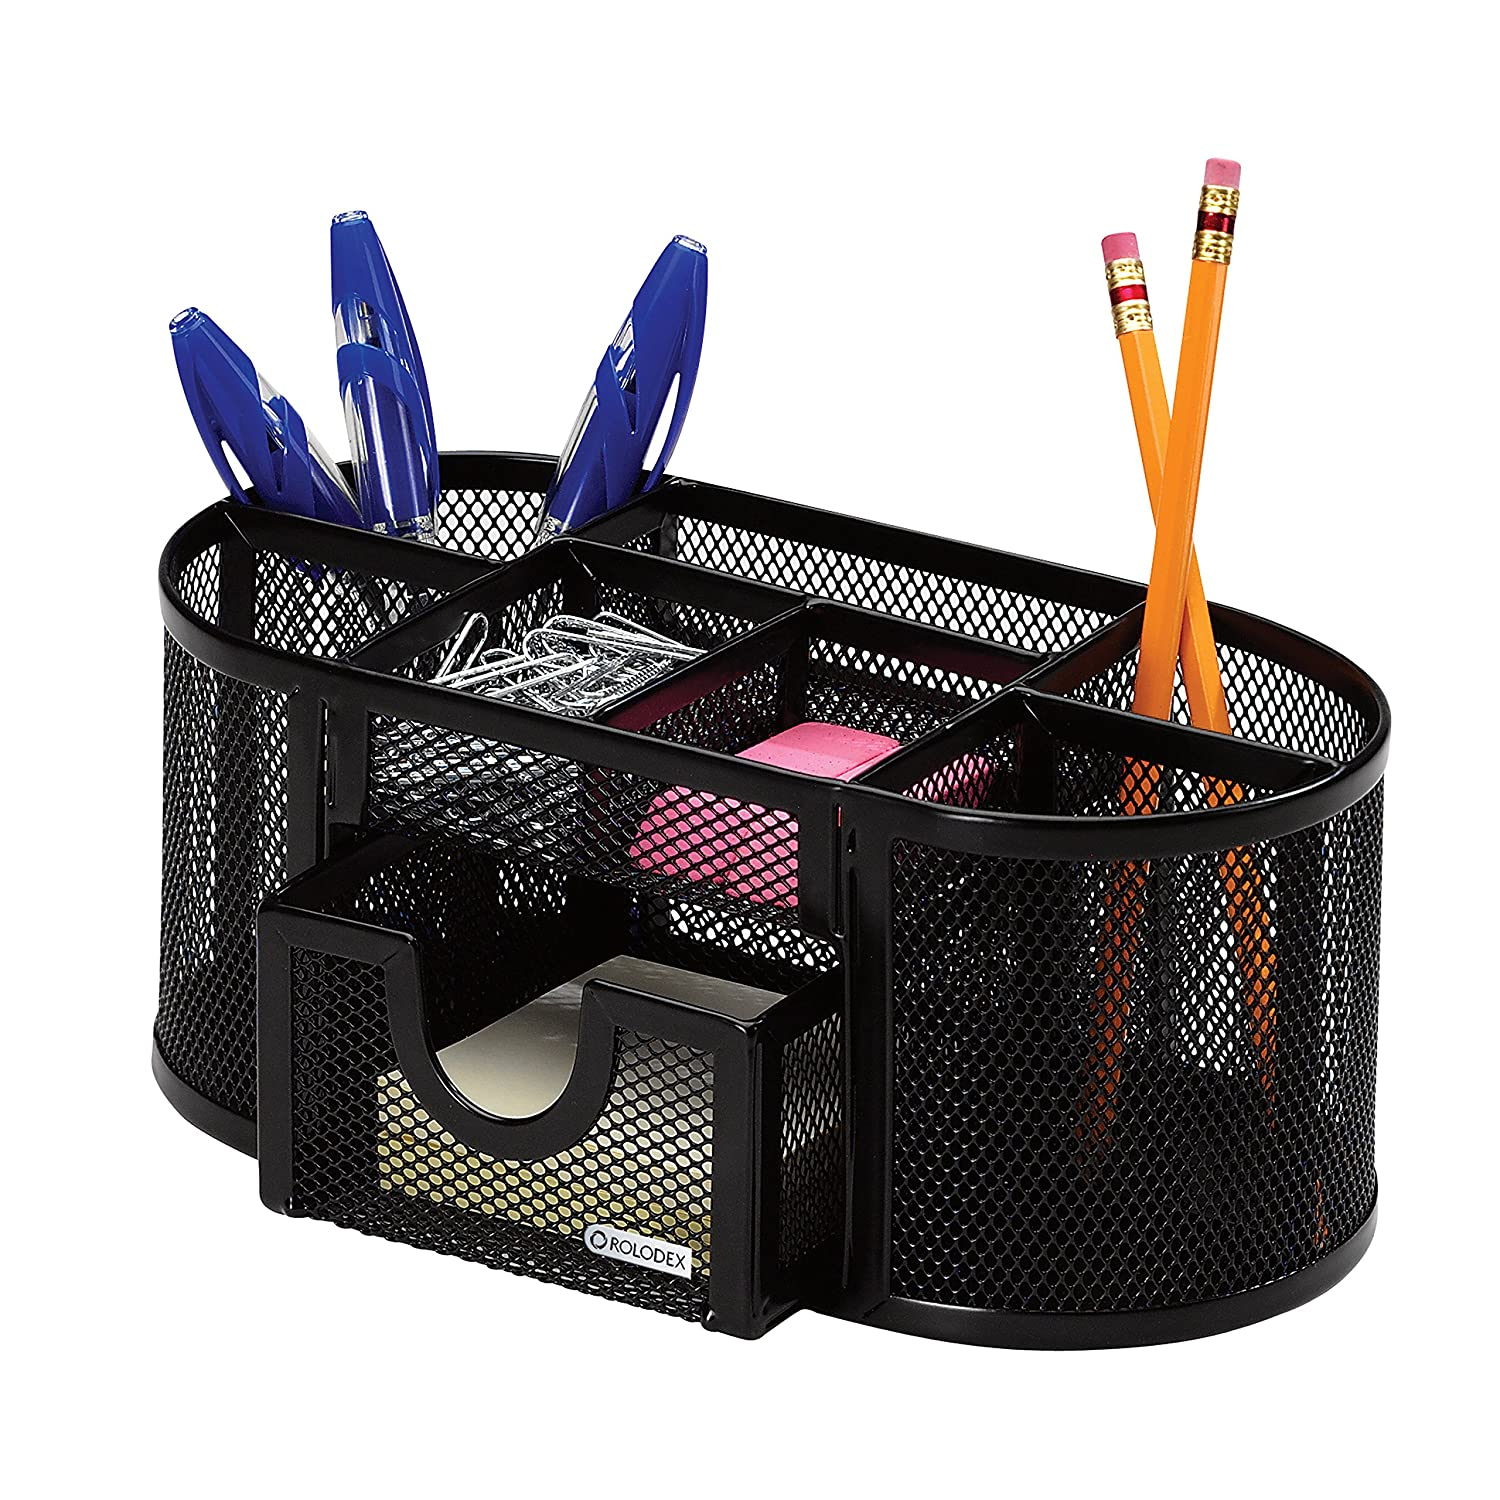 Amazoncom Rolodex Mesh Pencil Cup Organizer Four Compartments